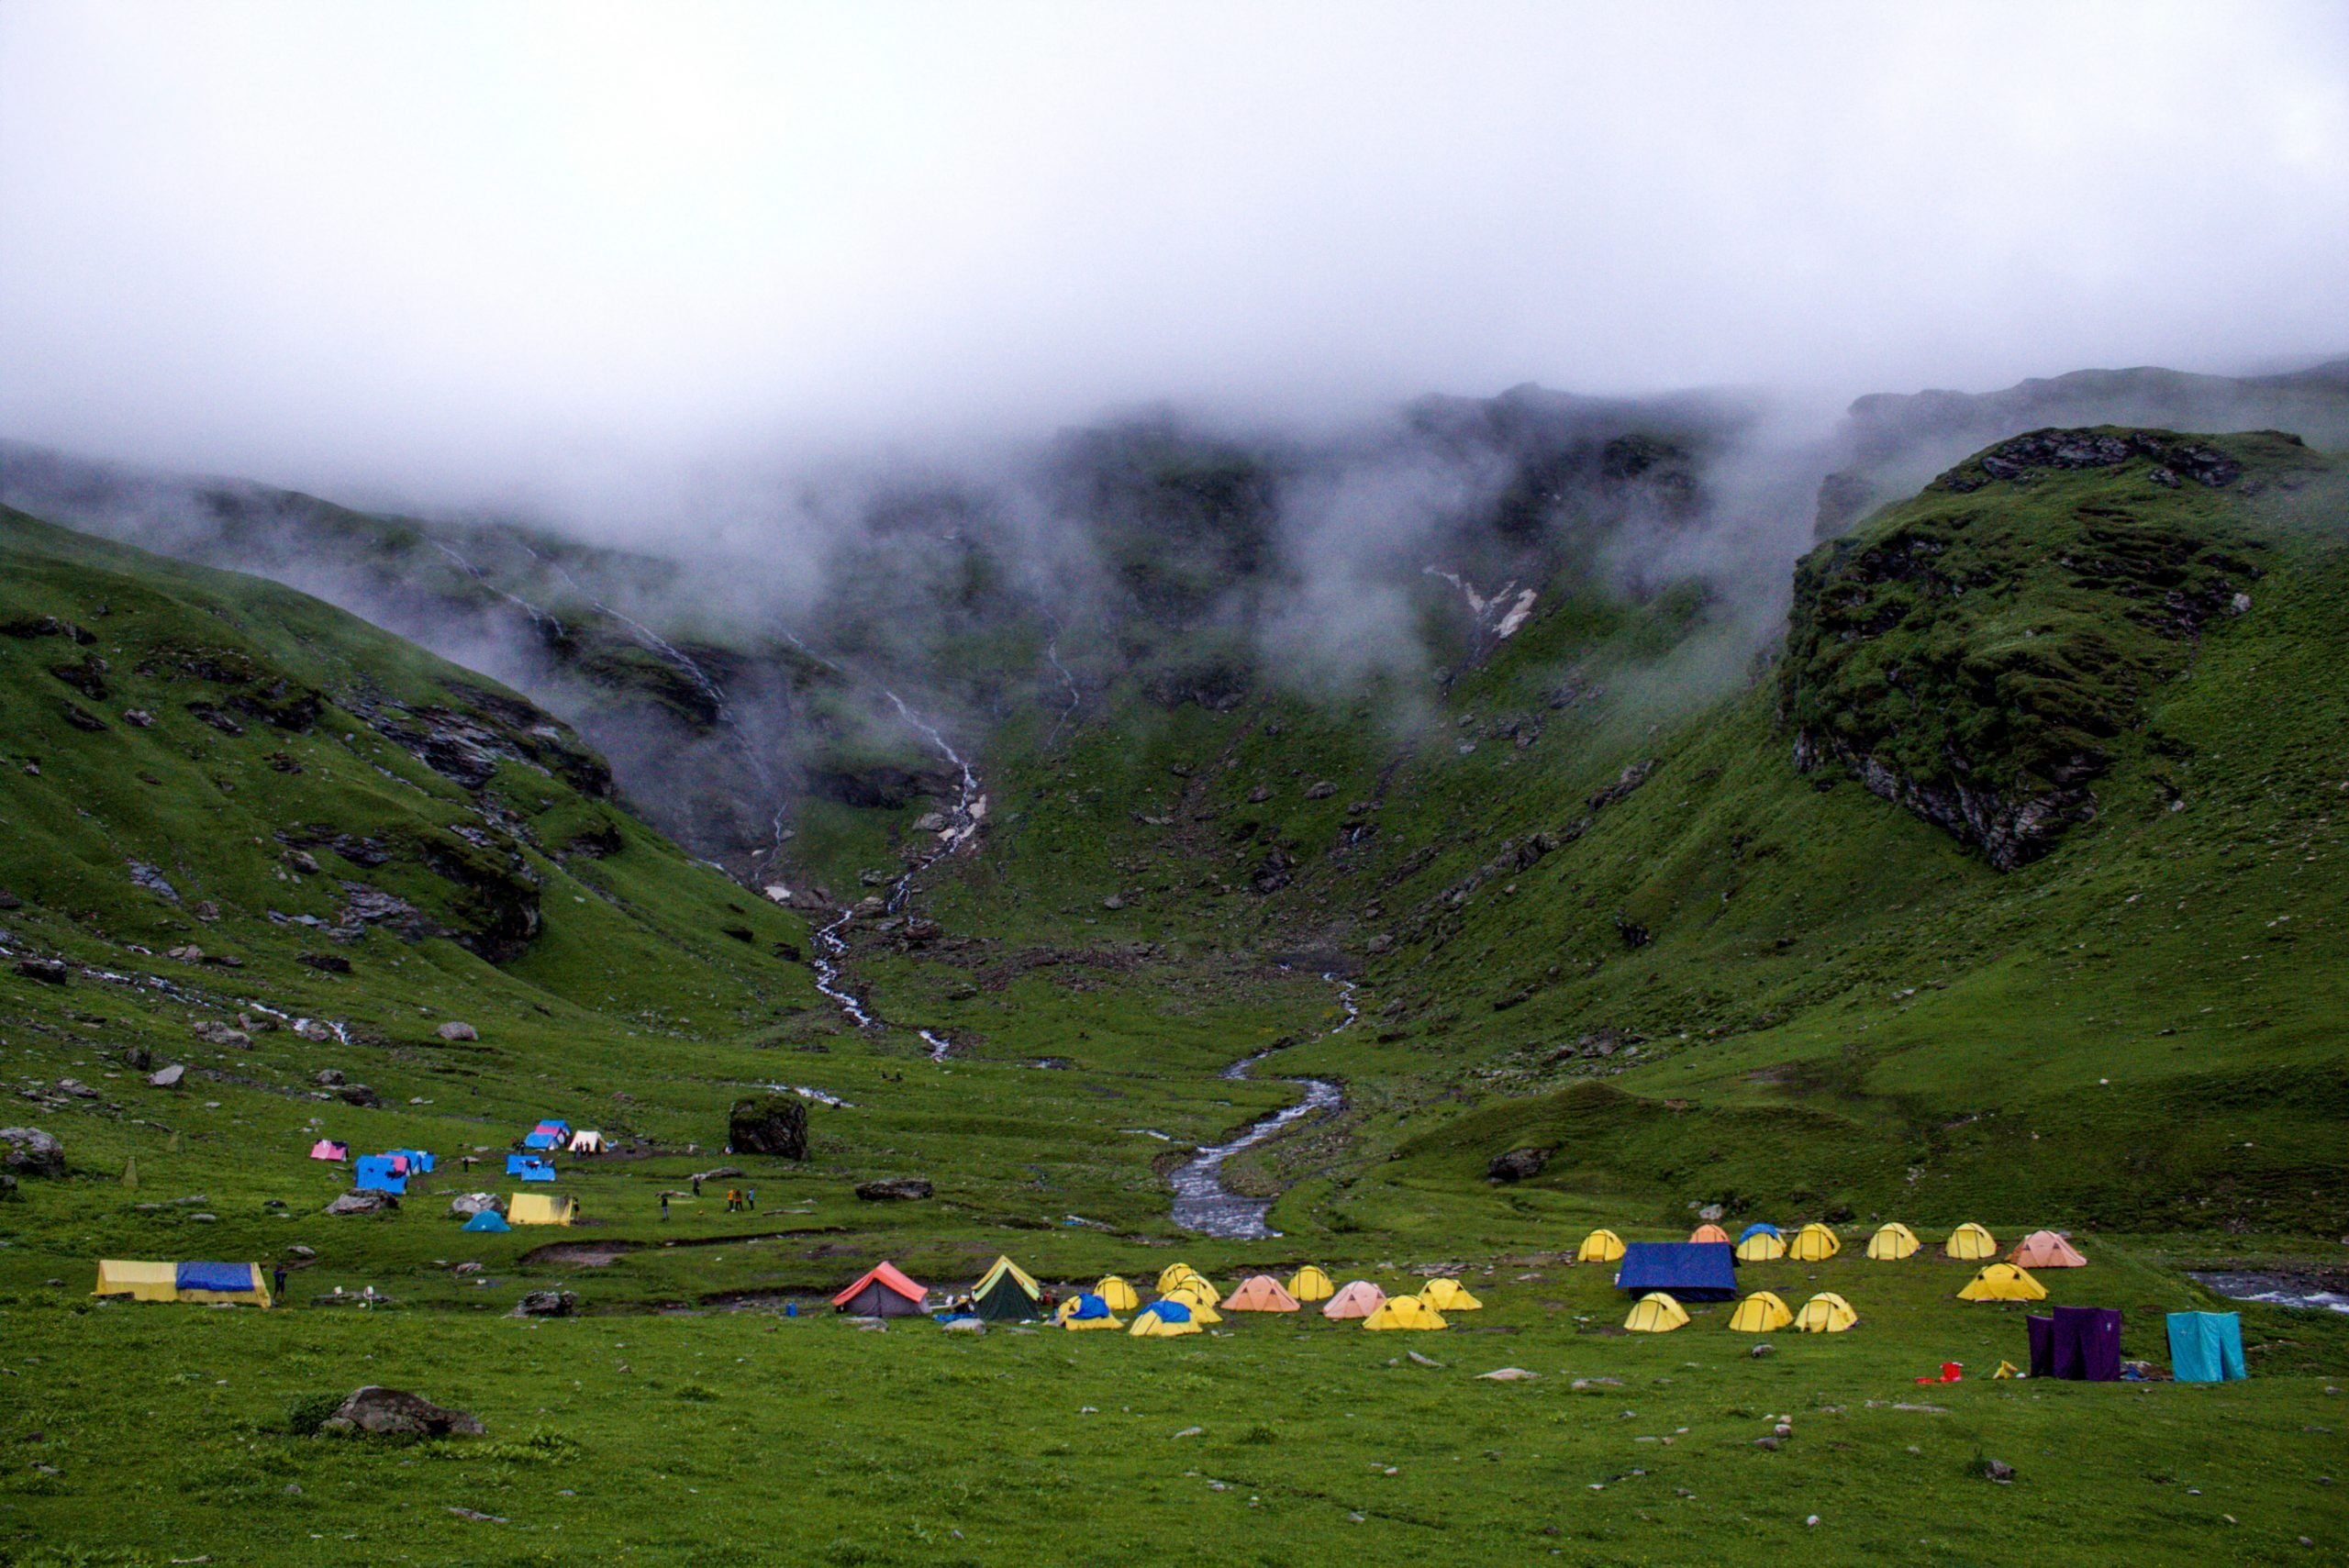 Camping in a hilly area